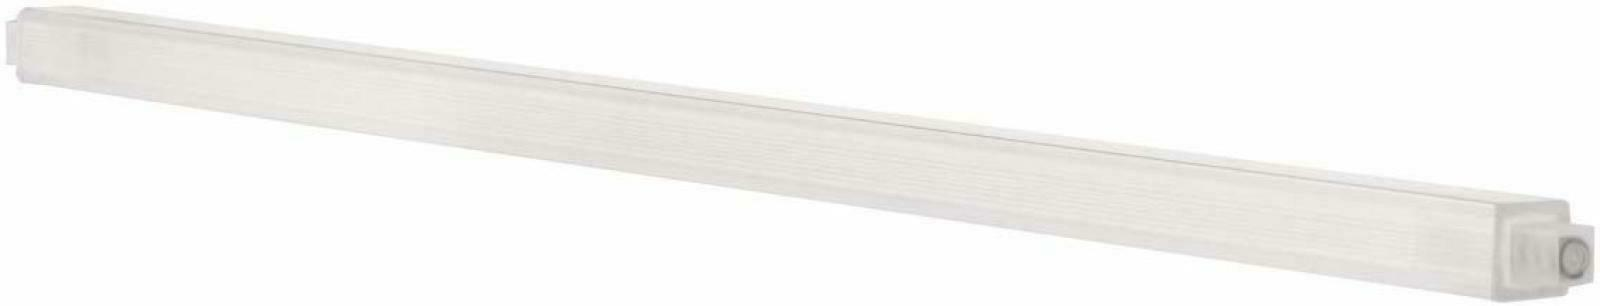 Franklin Brass 662318 24-Inch Replacement Towel Bar Only Cle